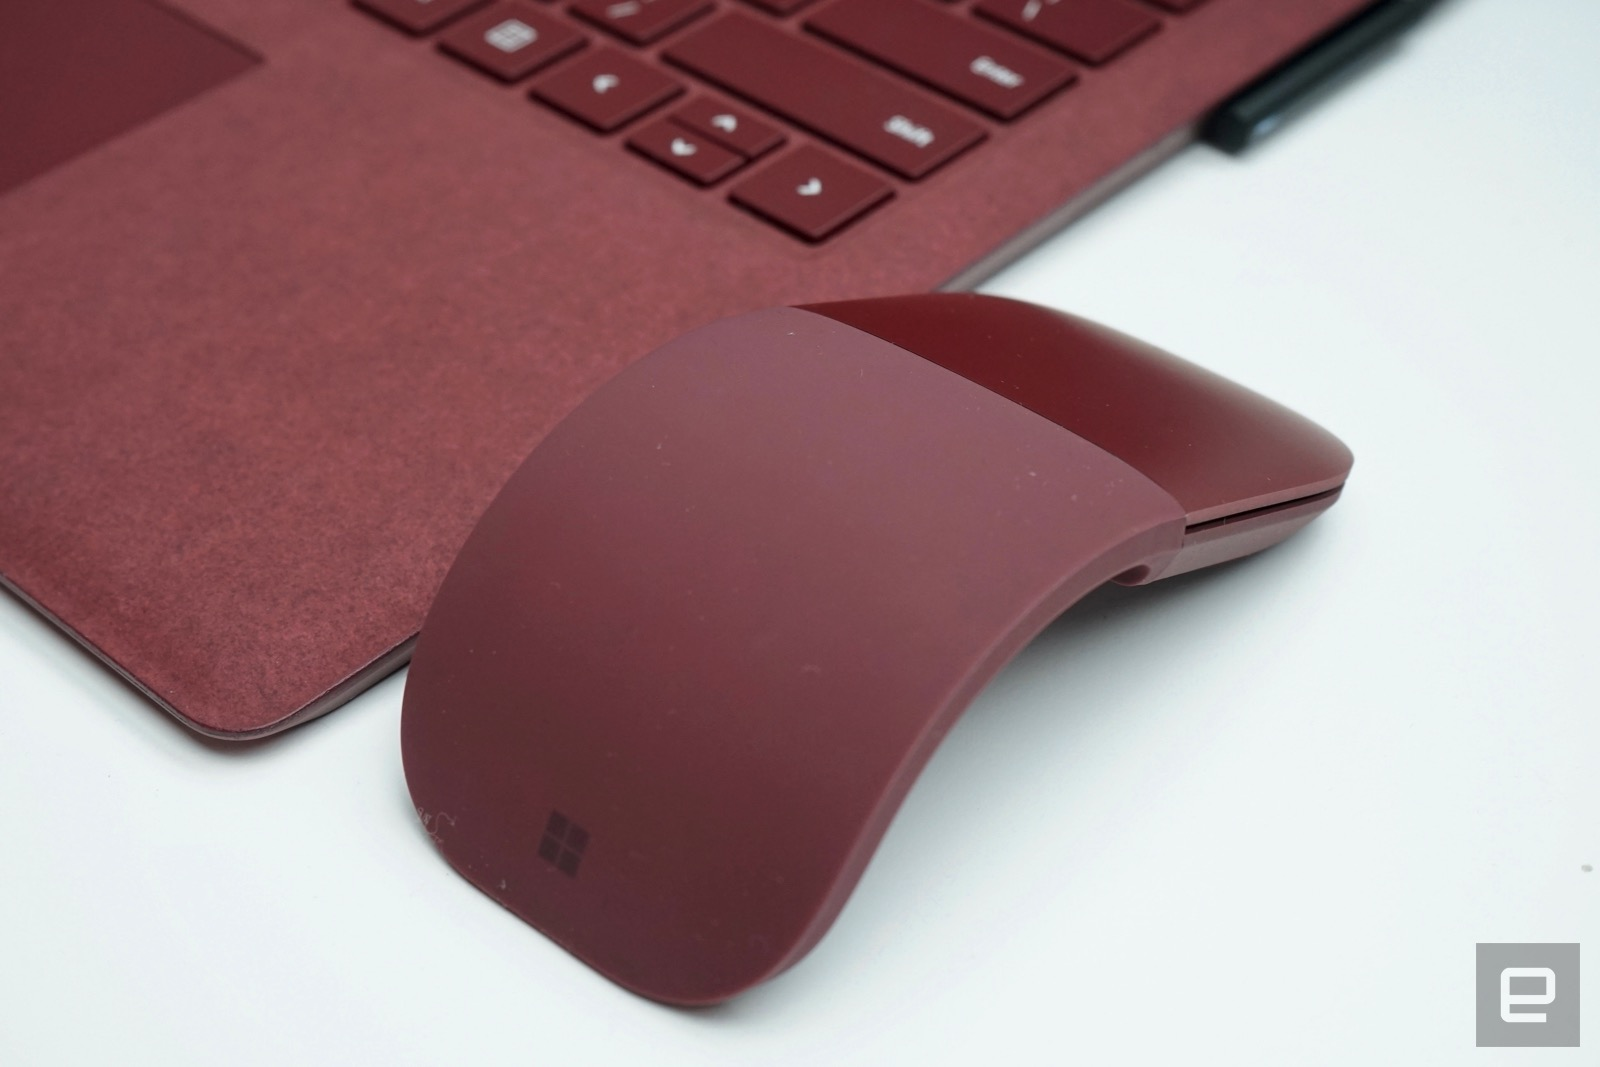 Microsofts Surface App Shows Accessory Battery Levels Microsoft 3600 Bluetooth Mobile Mouse Red